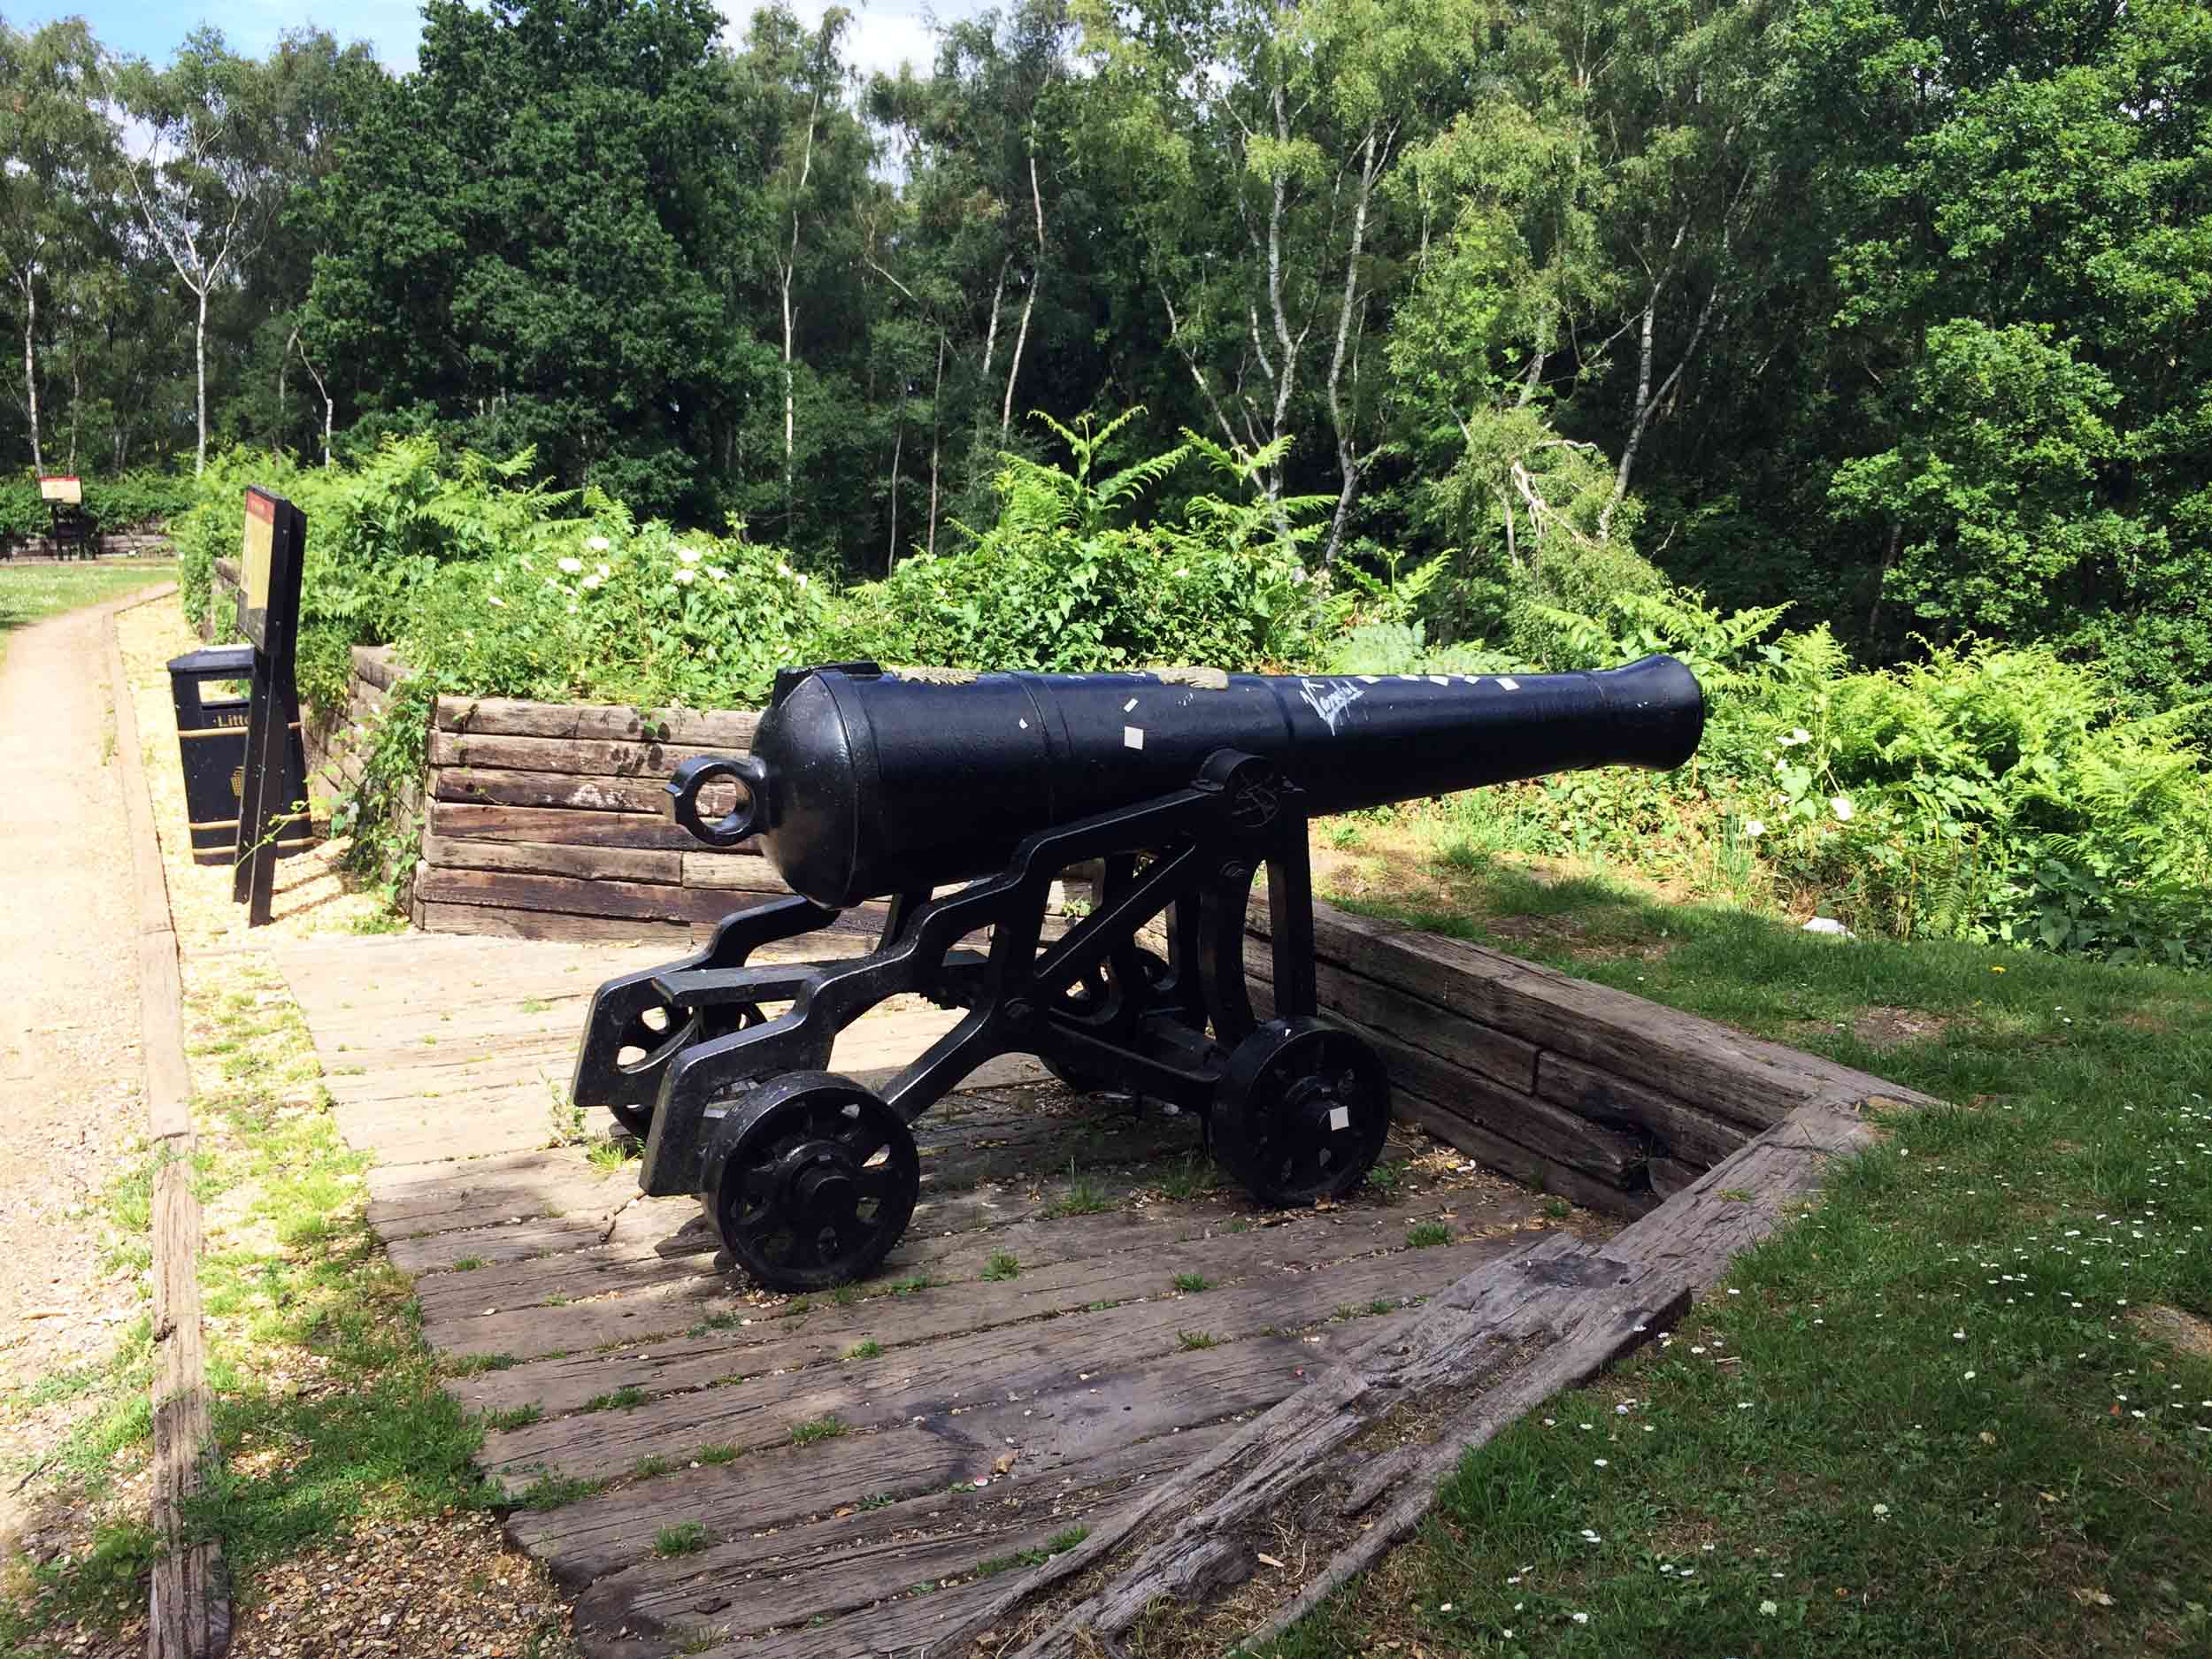 Canon at the Redan Hill Fortifications, Aldershot, Hampshire